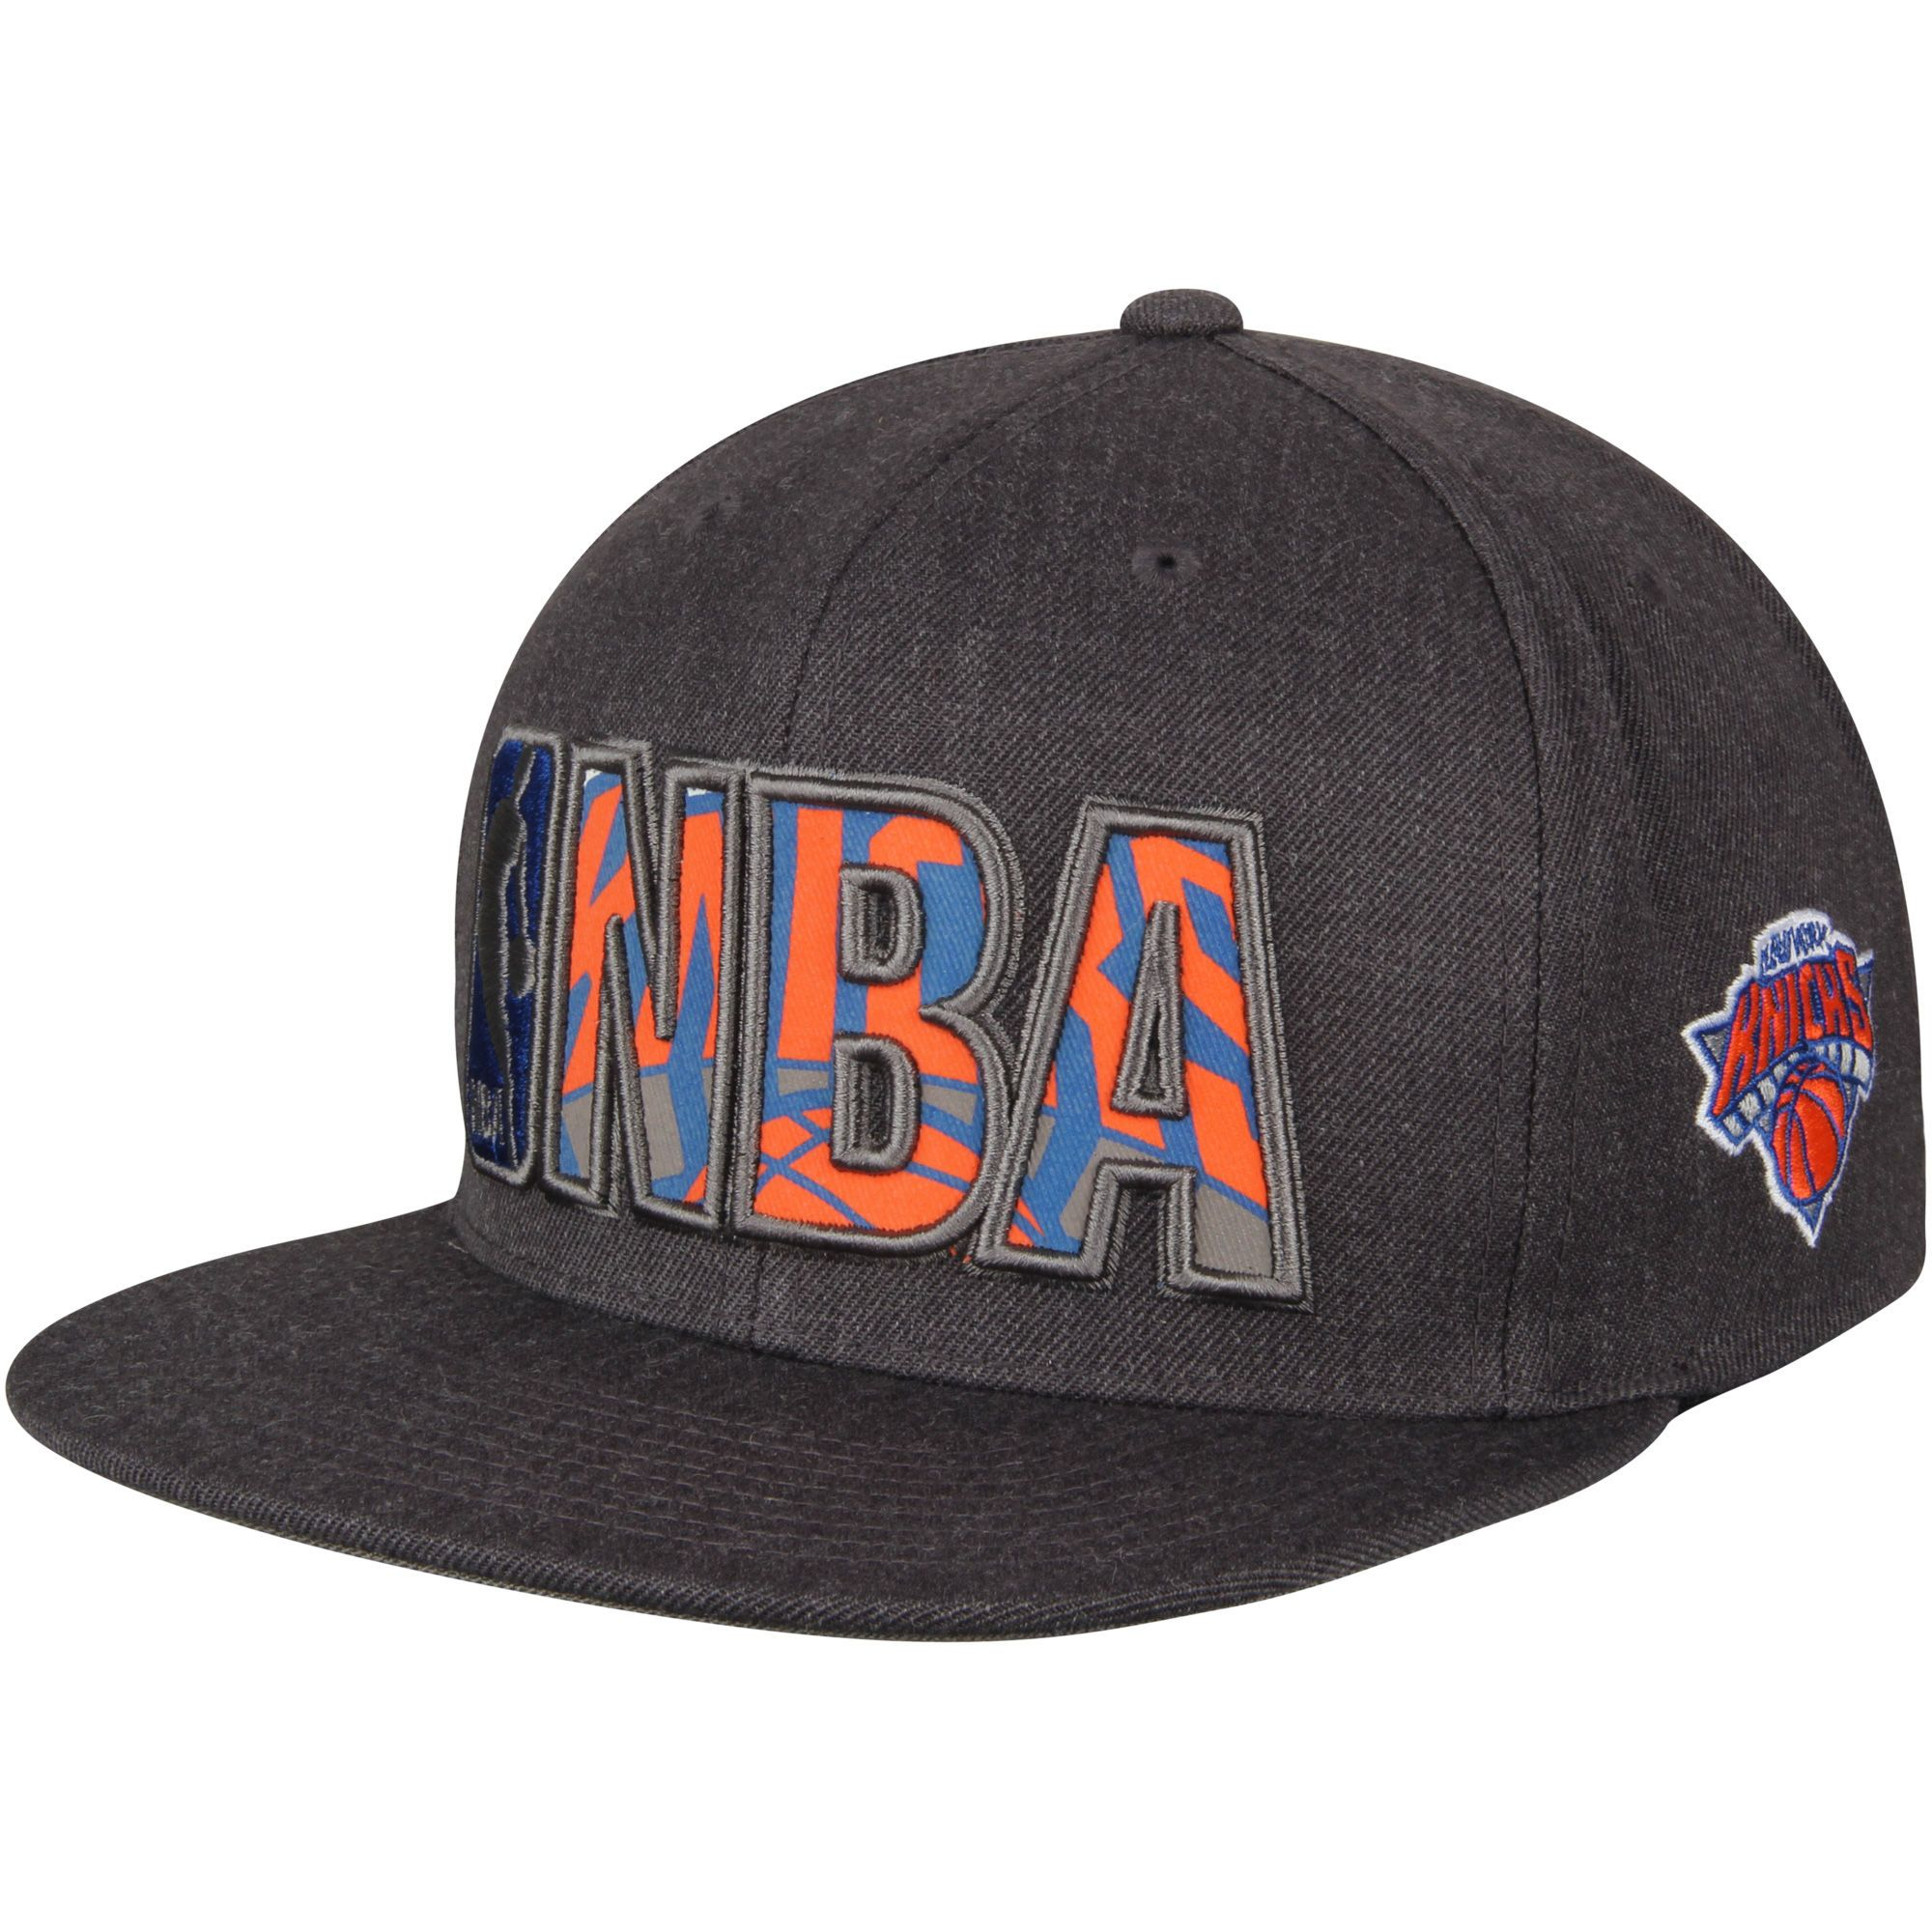 6956799eb77 Mitchell   Ness New York Knicks Gray Insider Reflective Snapback Adjustable  Hat